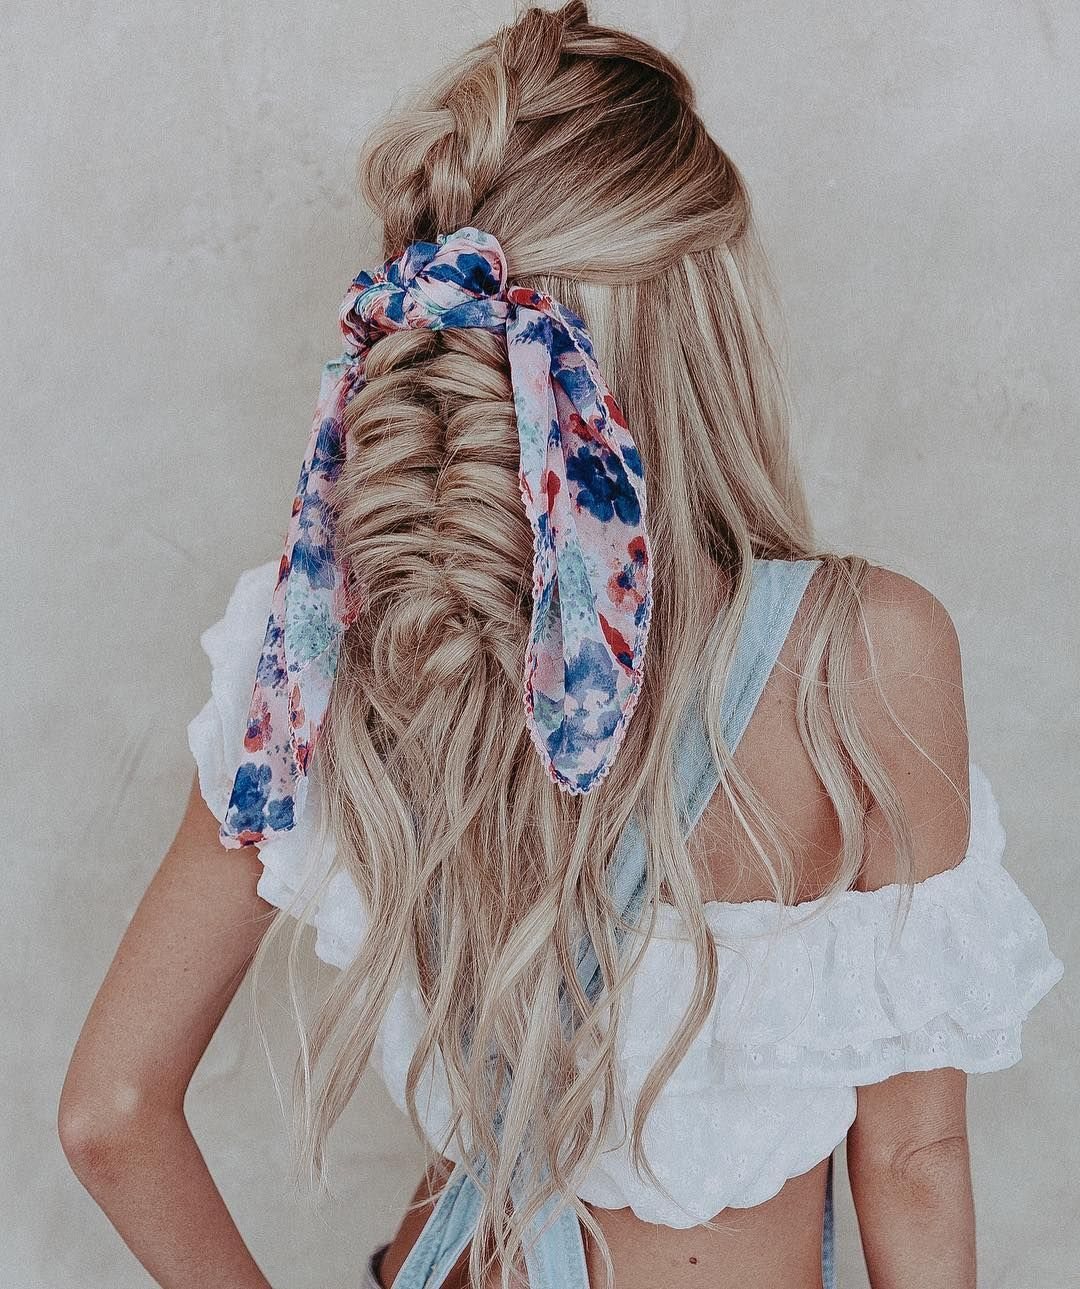 "Habit Salon on Instagram: ""Braids by the queen 👸🏼 @taylor_lamb_hair w/ @habit.hand.tied.extensions by @hairby_chrissy \ @kaylaoberg 📷: @shannongilpinphoto"""